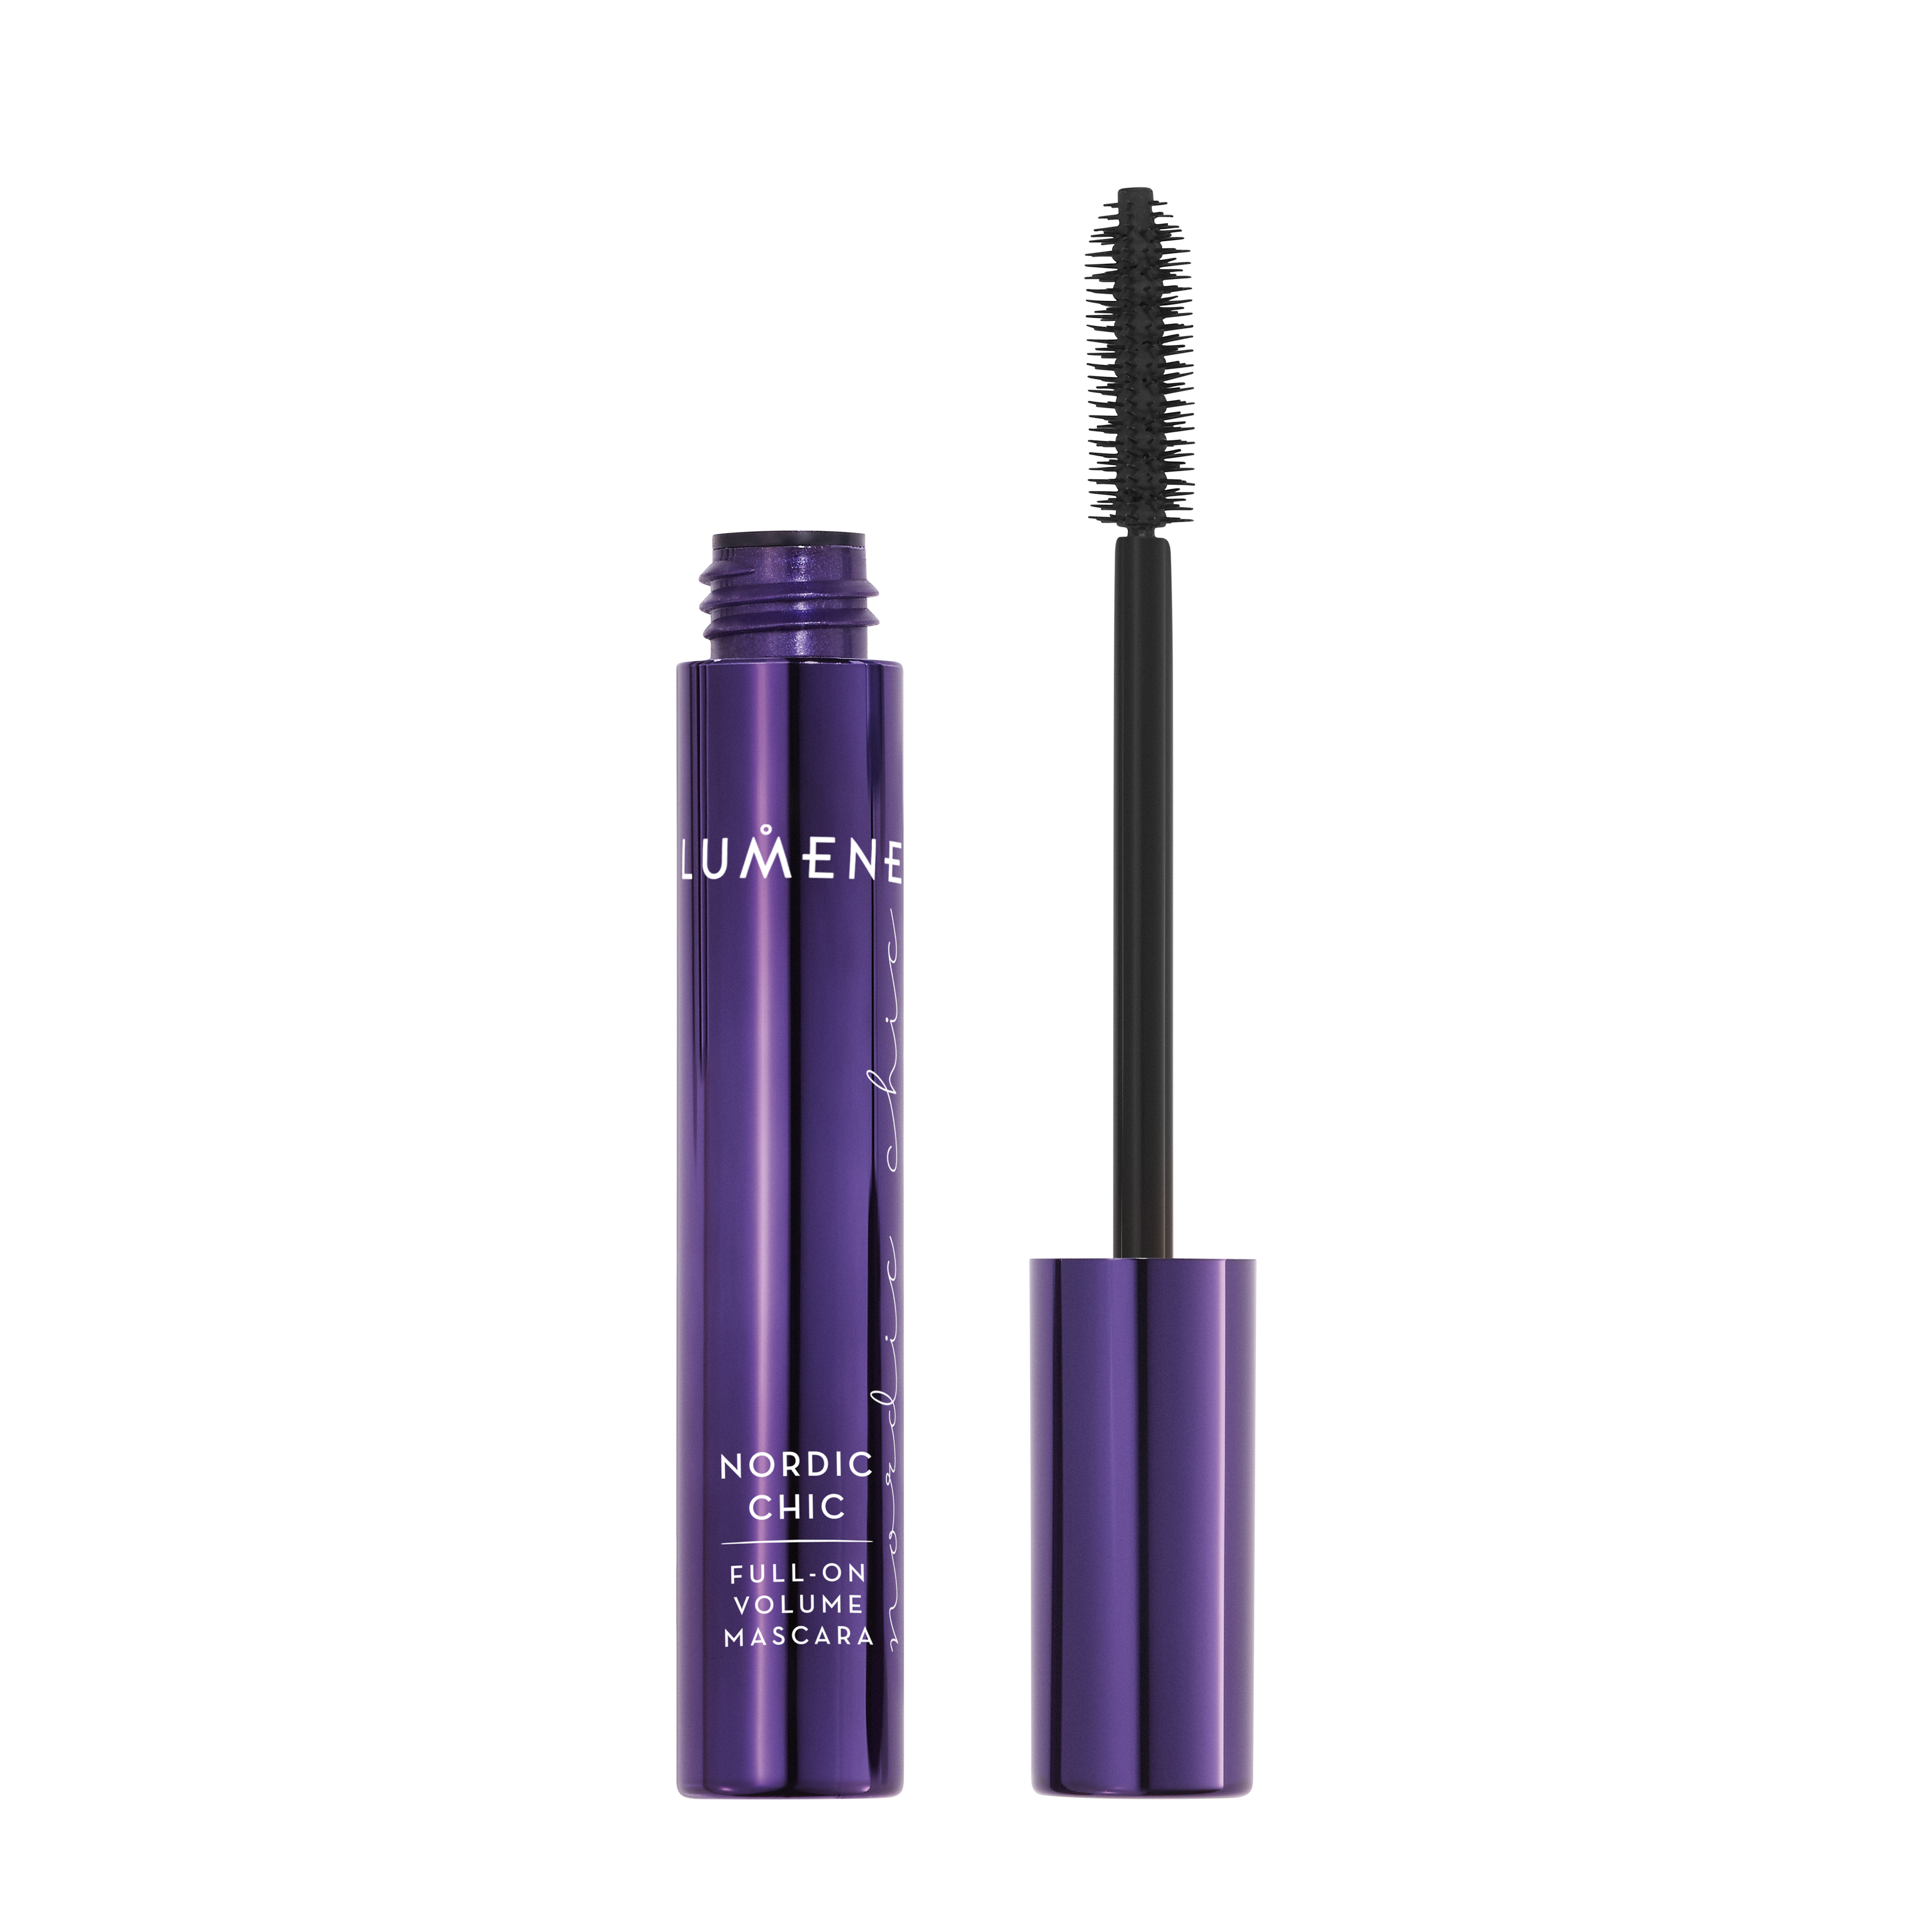 Nordic Chic Full-on Volume Mascara Black